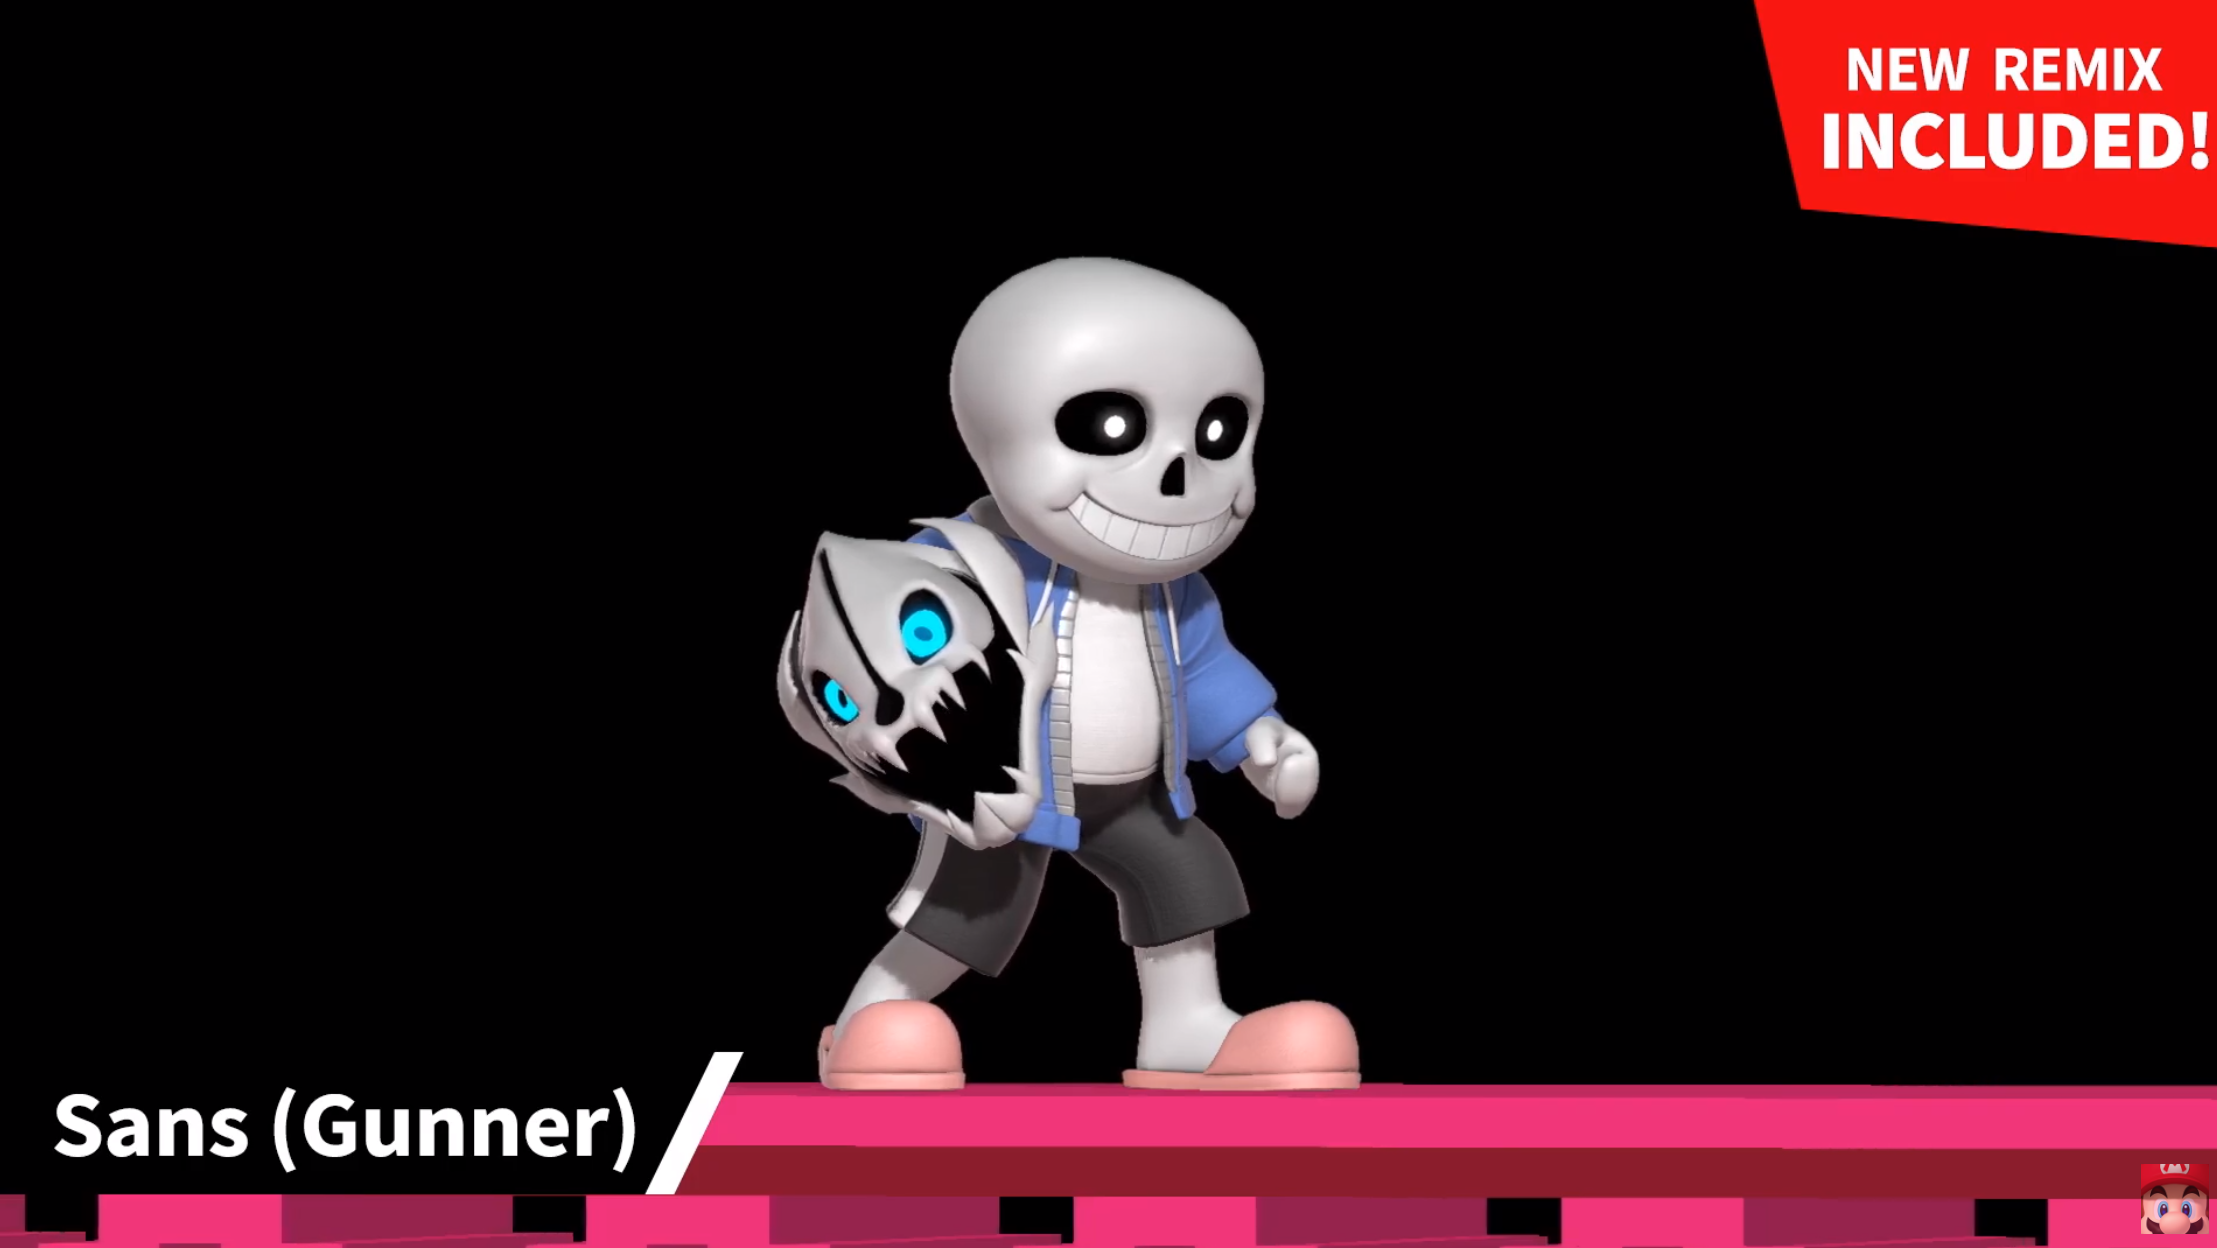 Undertale's Sans becomes a costume in Super Smash Bros